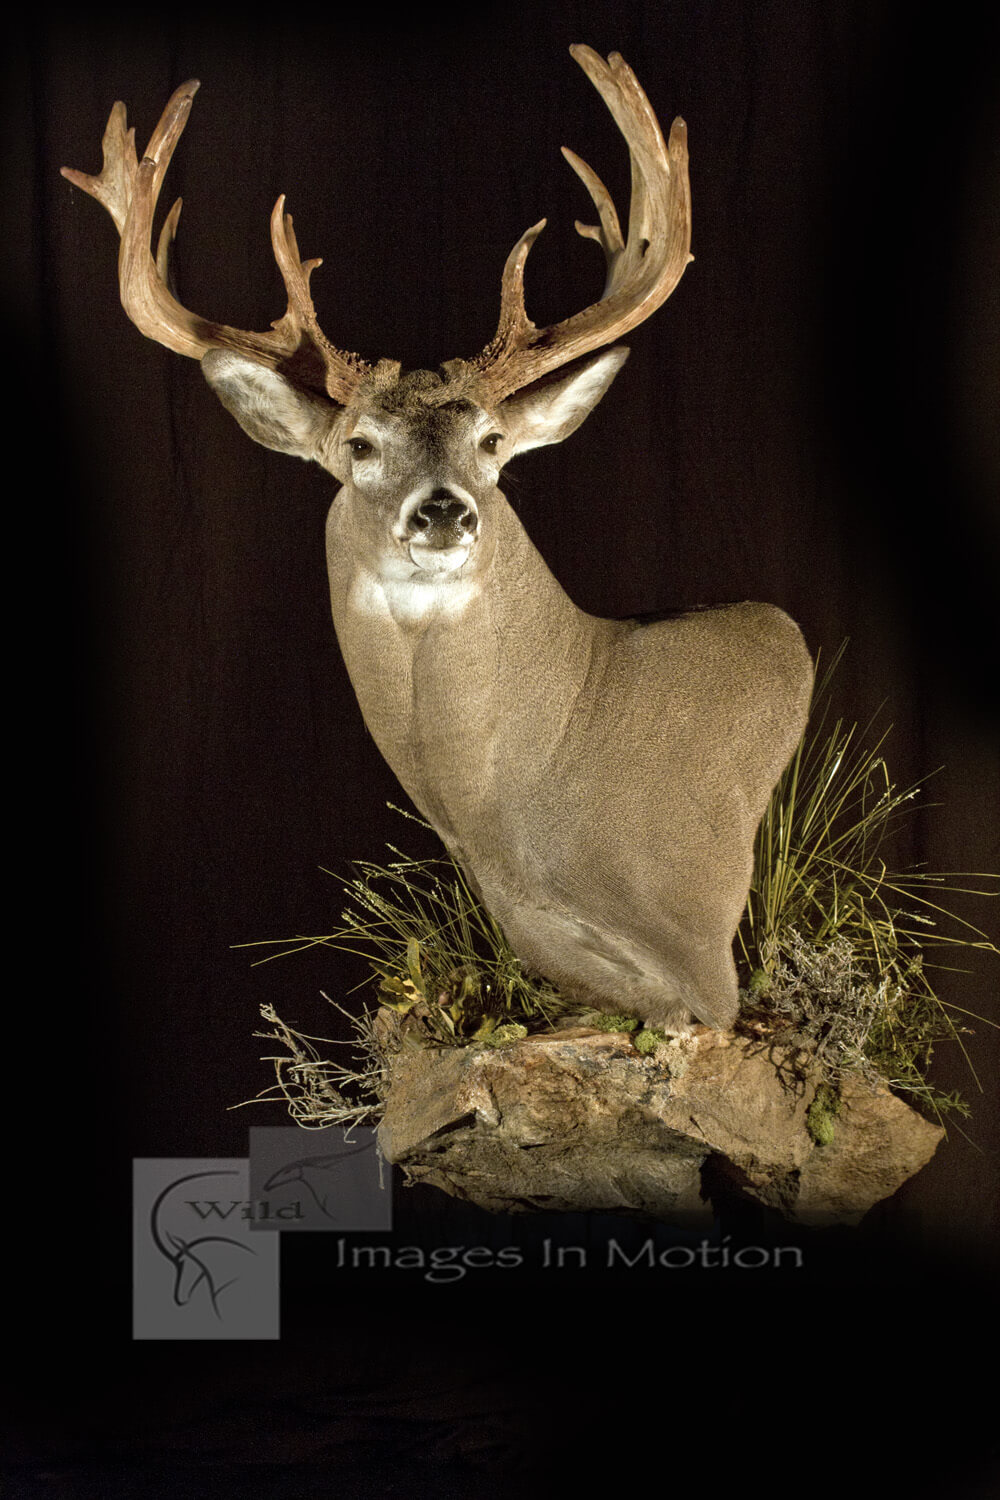 North American Whitetail Deer Pedestal Wild Images In Motion